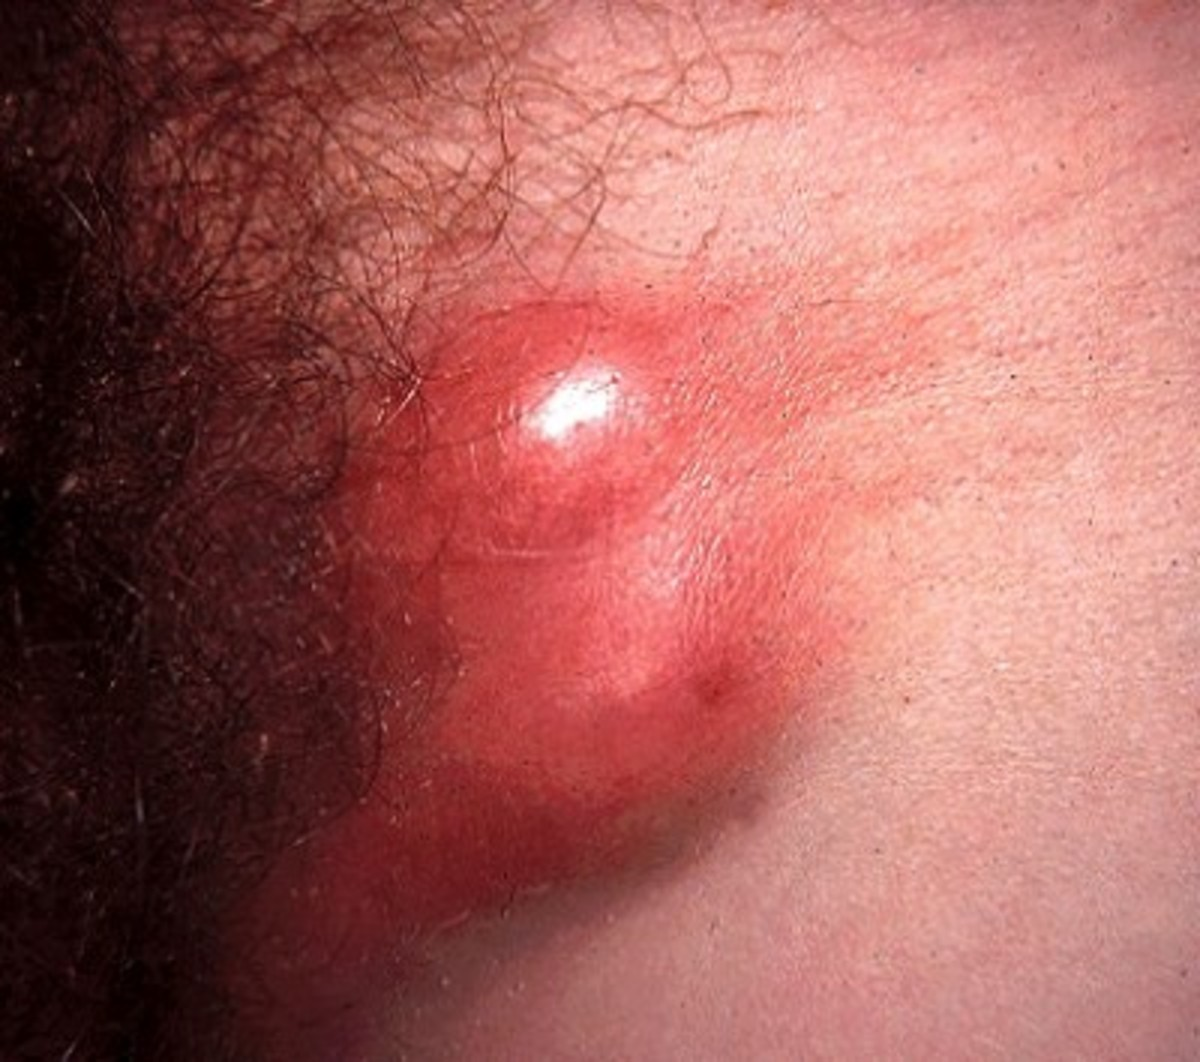 Lymphogranuloma Venereum: Health Relevance, Clinical Presentations, Diagnosis And Treatment